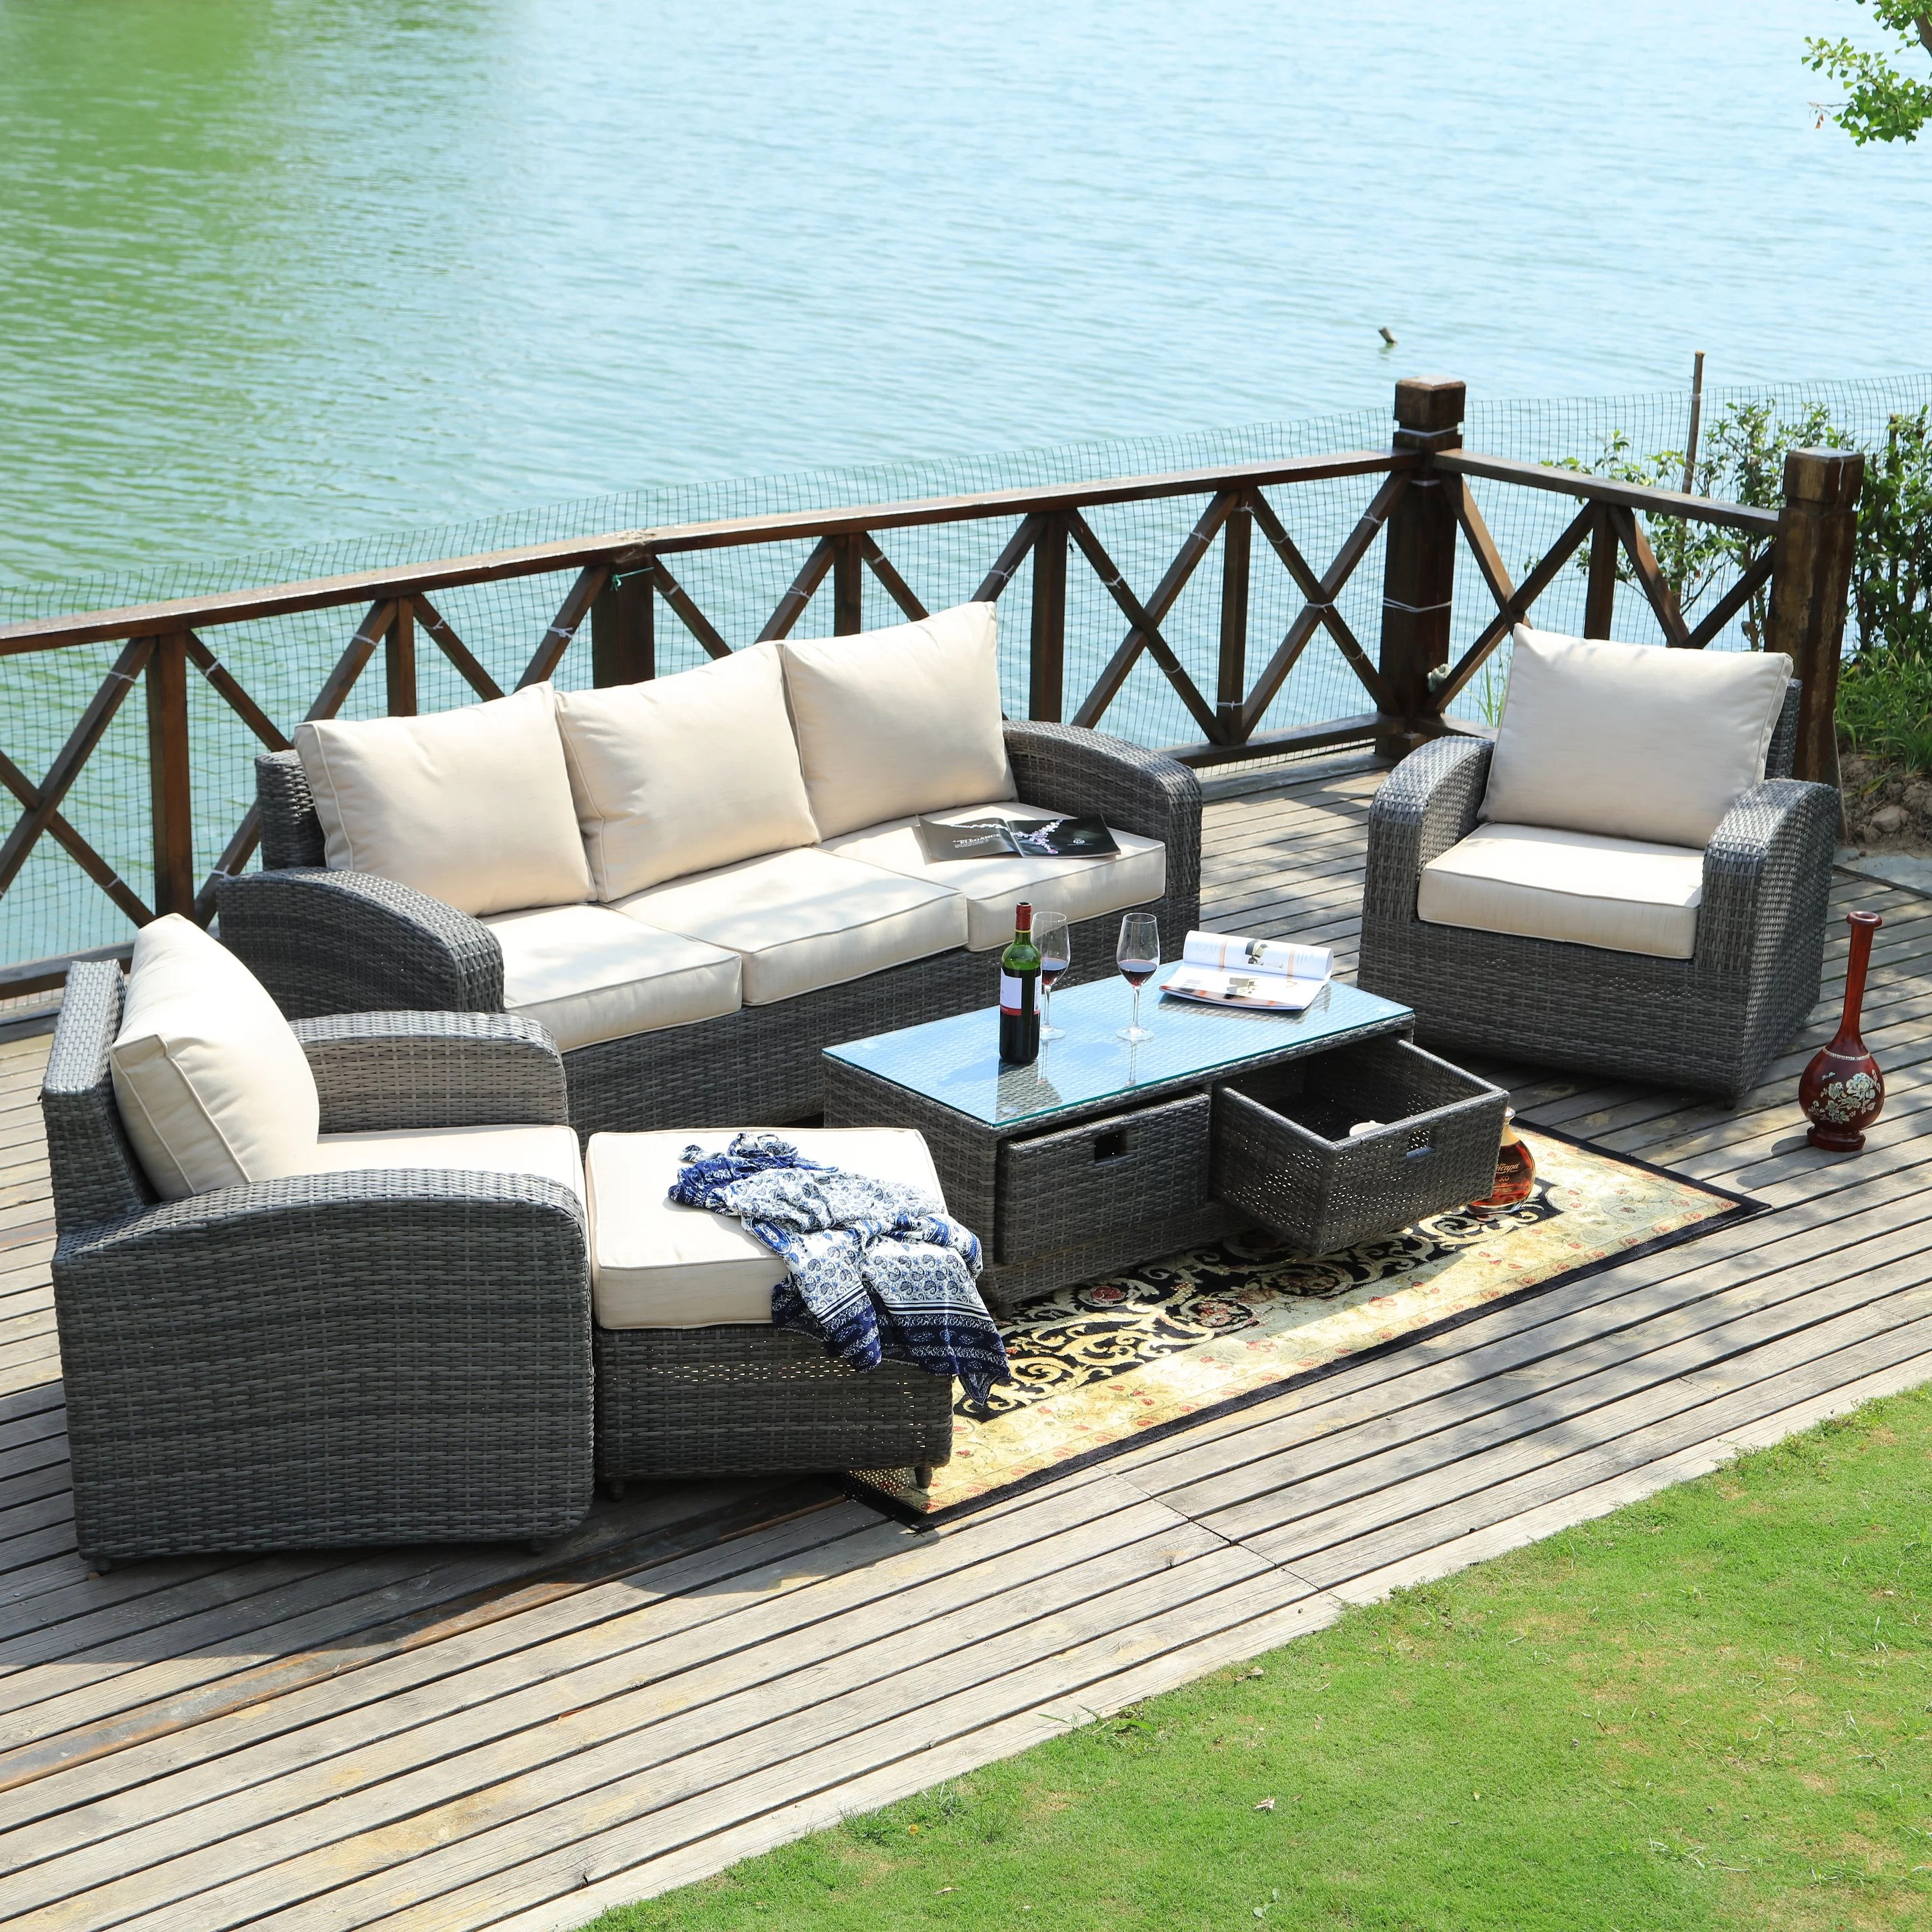 Baptist 6 Piece Rattan Sofa Set With Cushions Belmonte 5 Piece Rattan Sofa Seating Group With Cushions